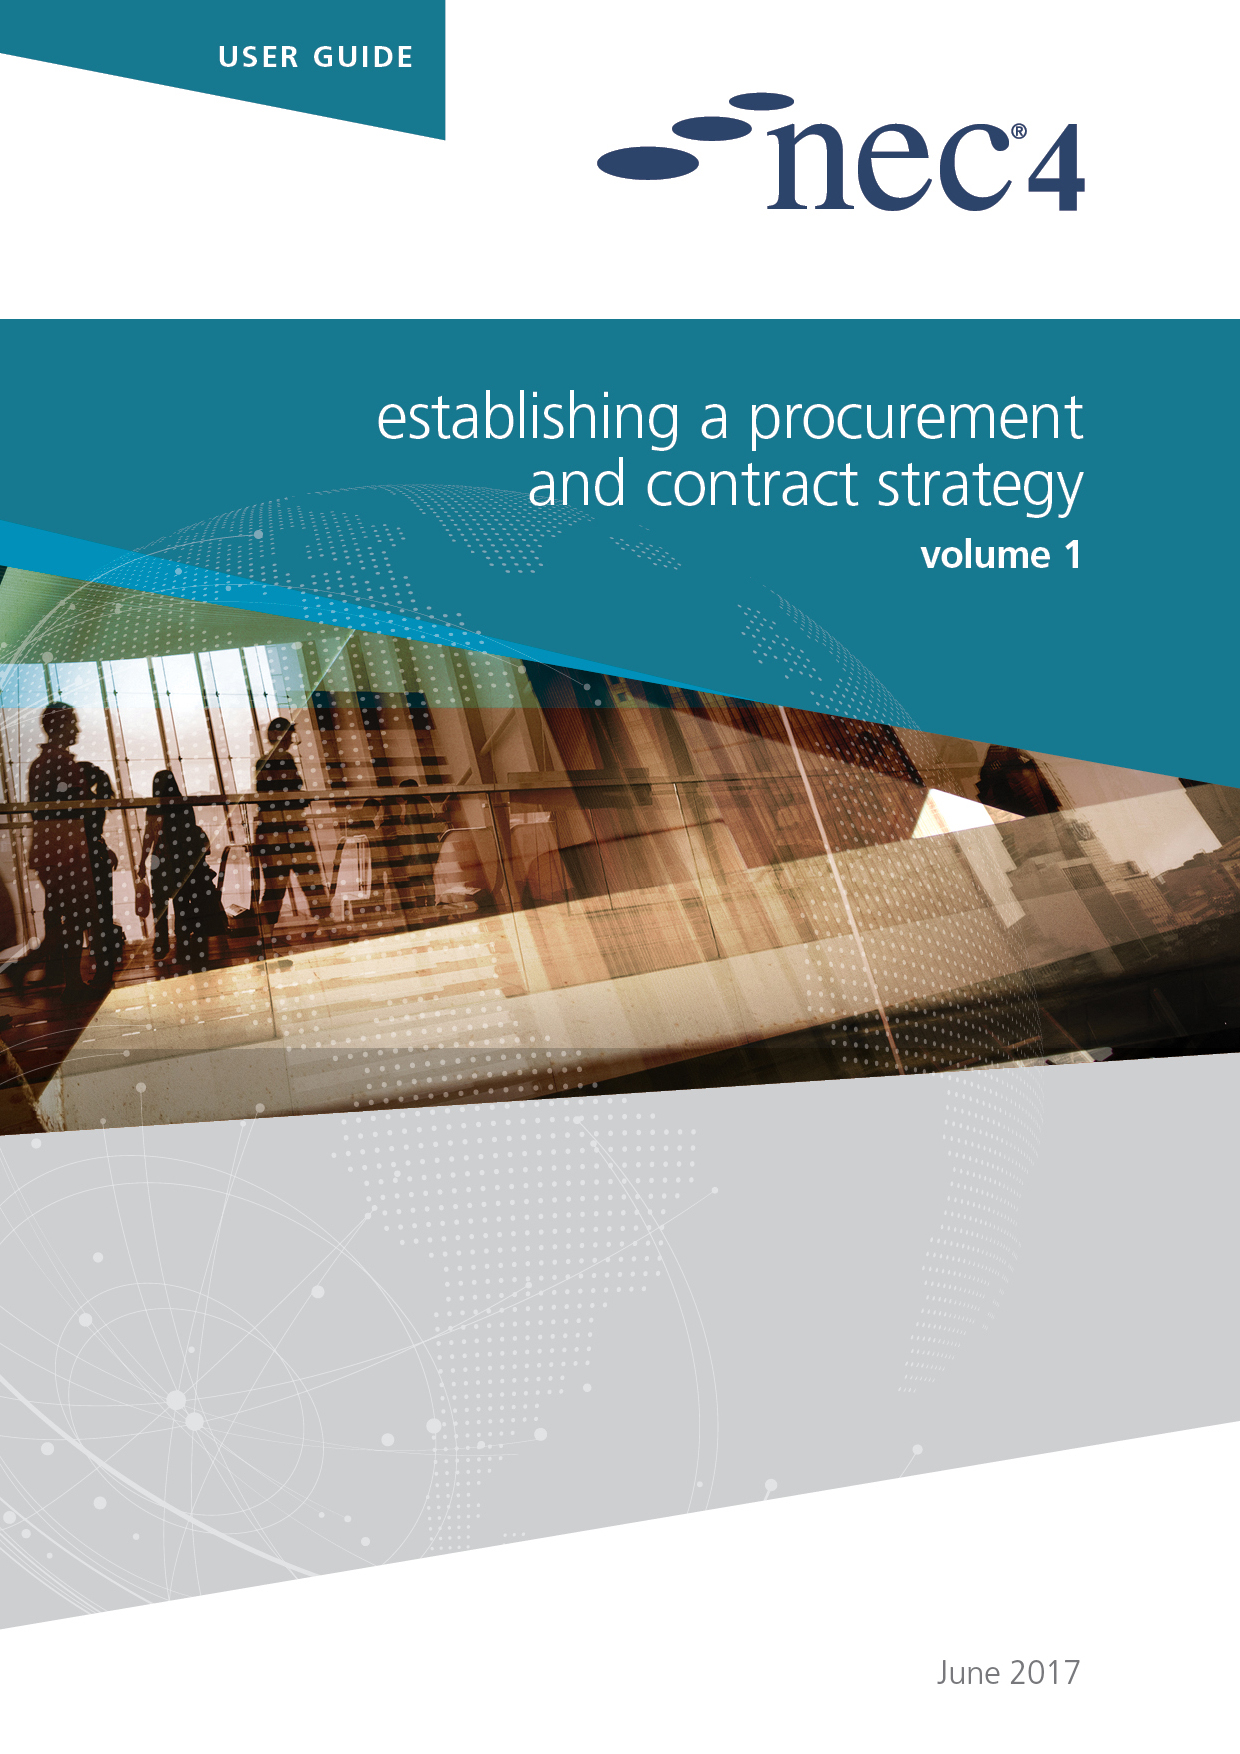 NEC4: Establishing a Procurement and Contract Strategy